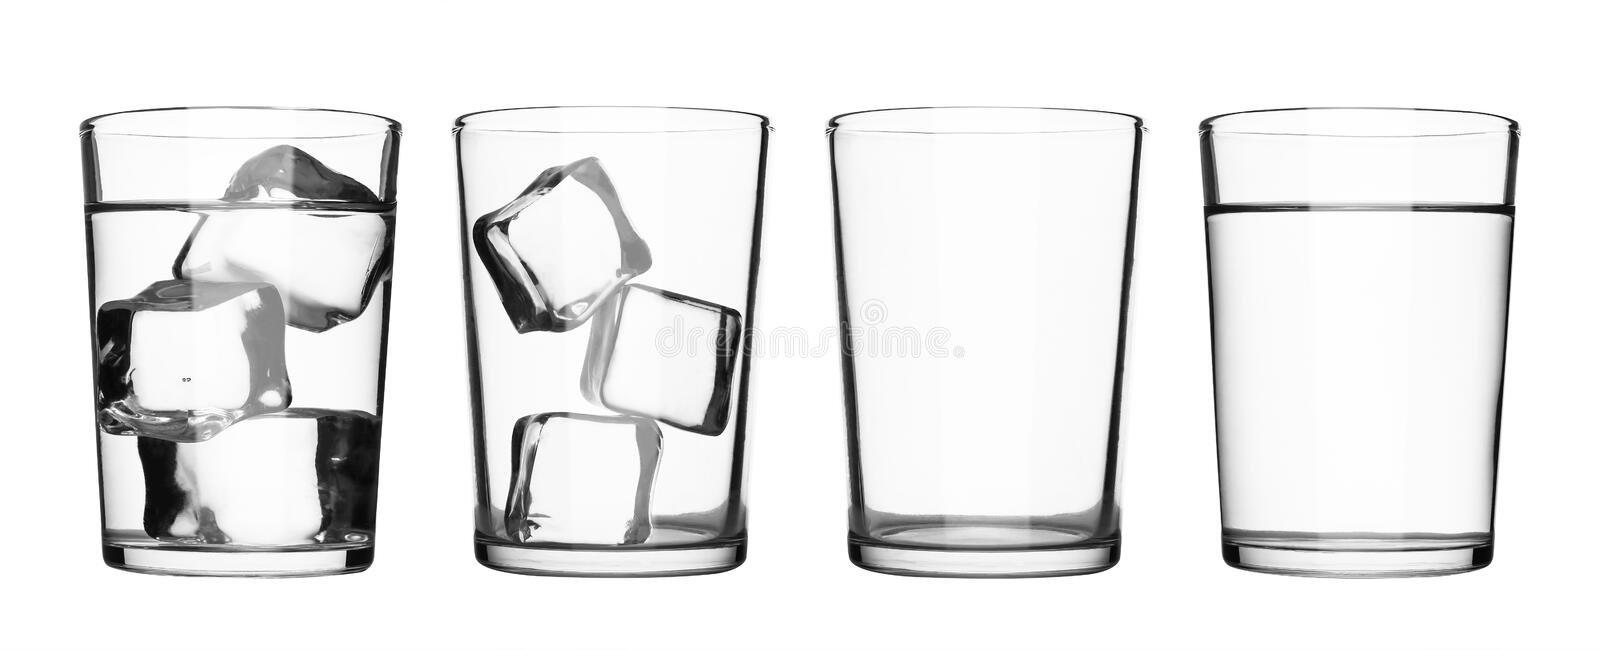 Set of drink glass with water and ice cubes isolated on pure white background. Glass of water or refreshment.  Clipping path royalty free stock photo